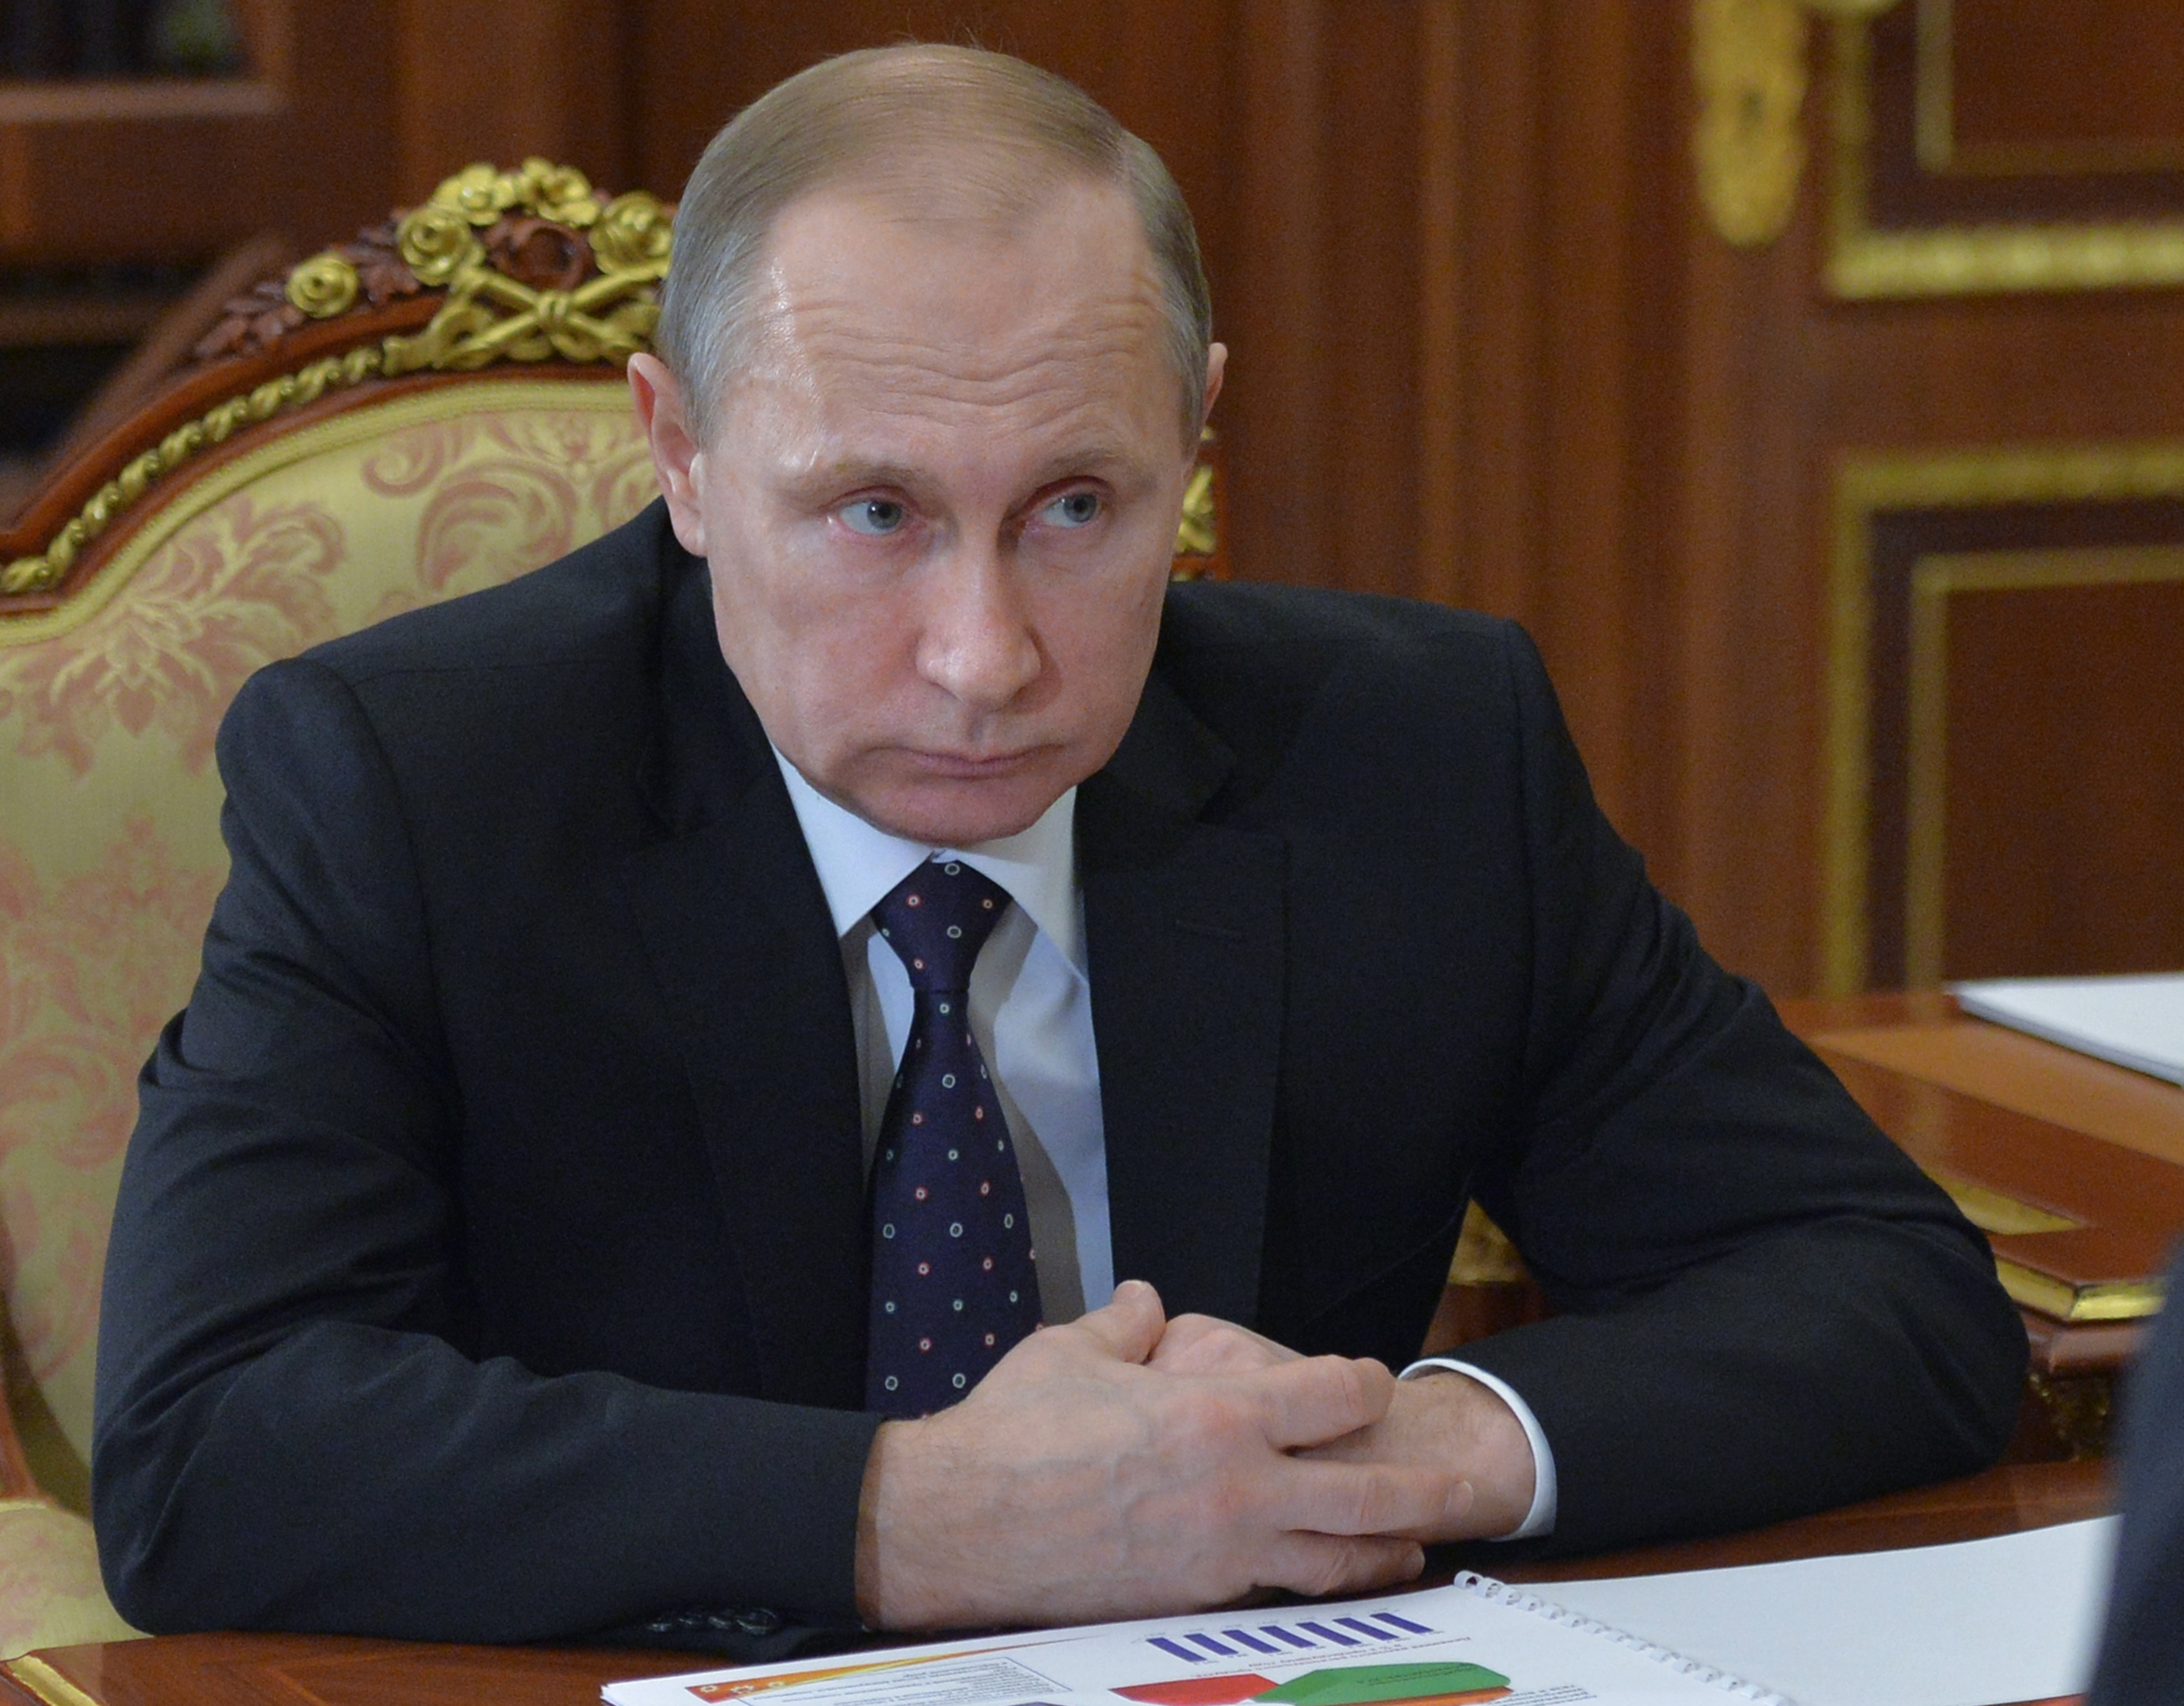 Controversial Russian cartoons show Putin's enemies violently killed